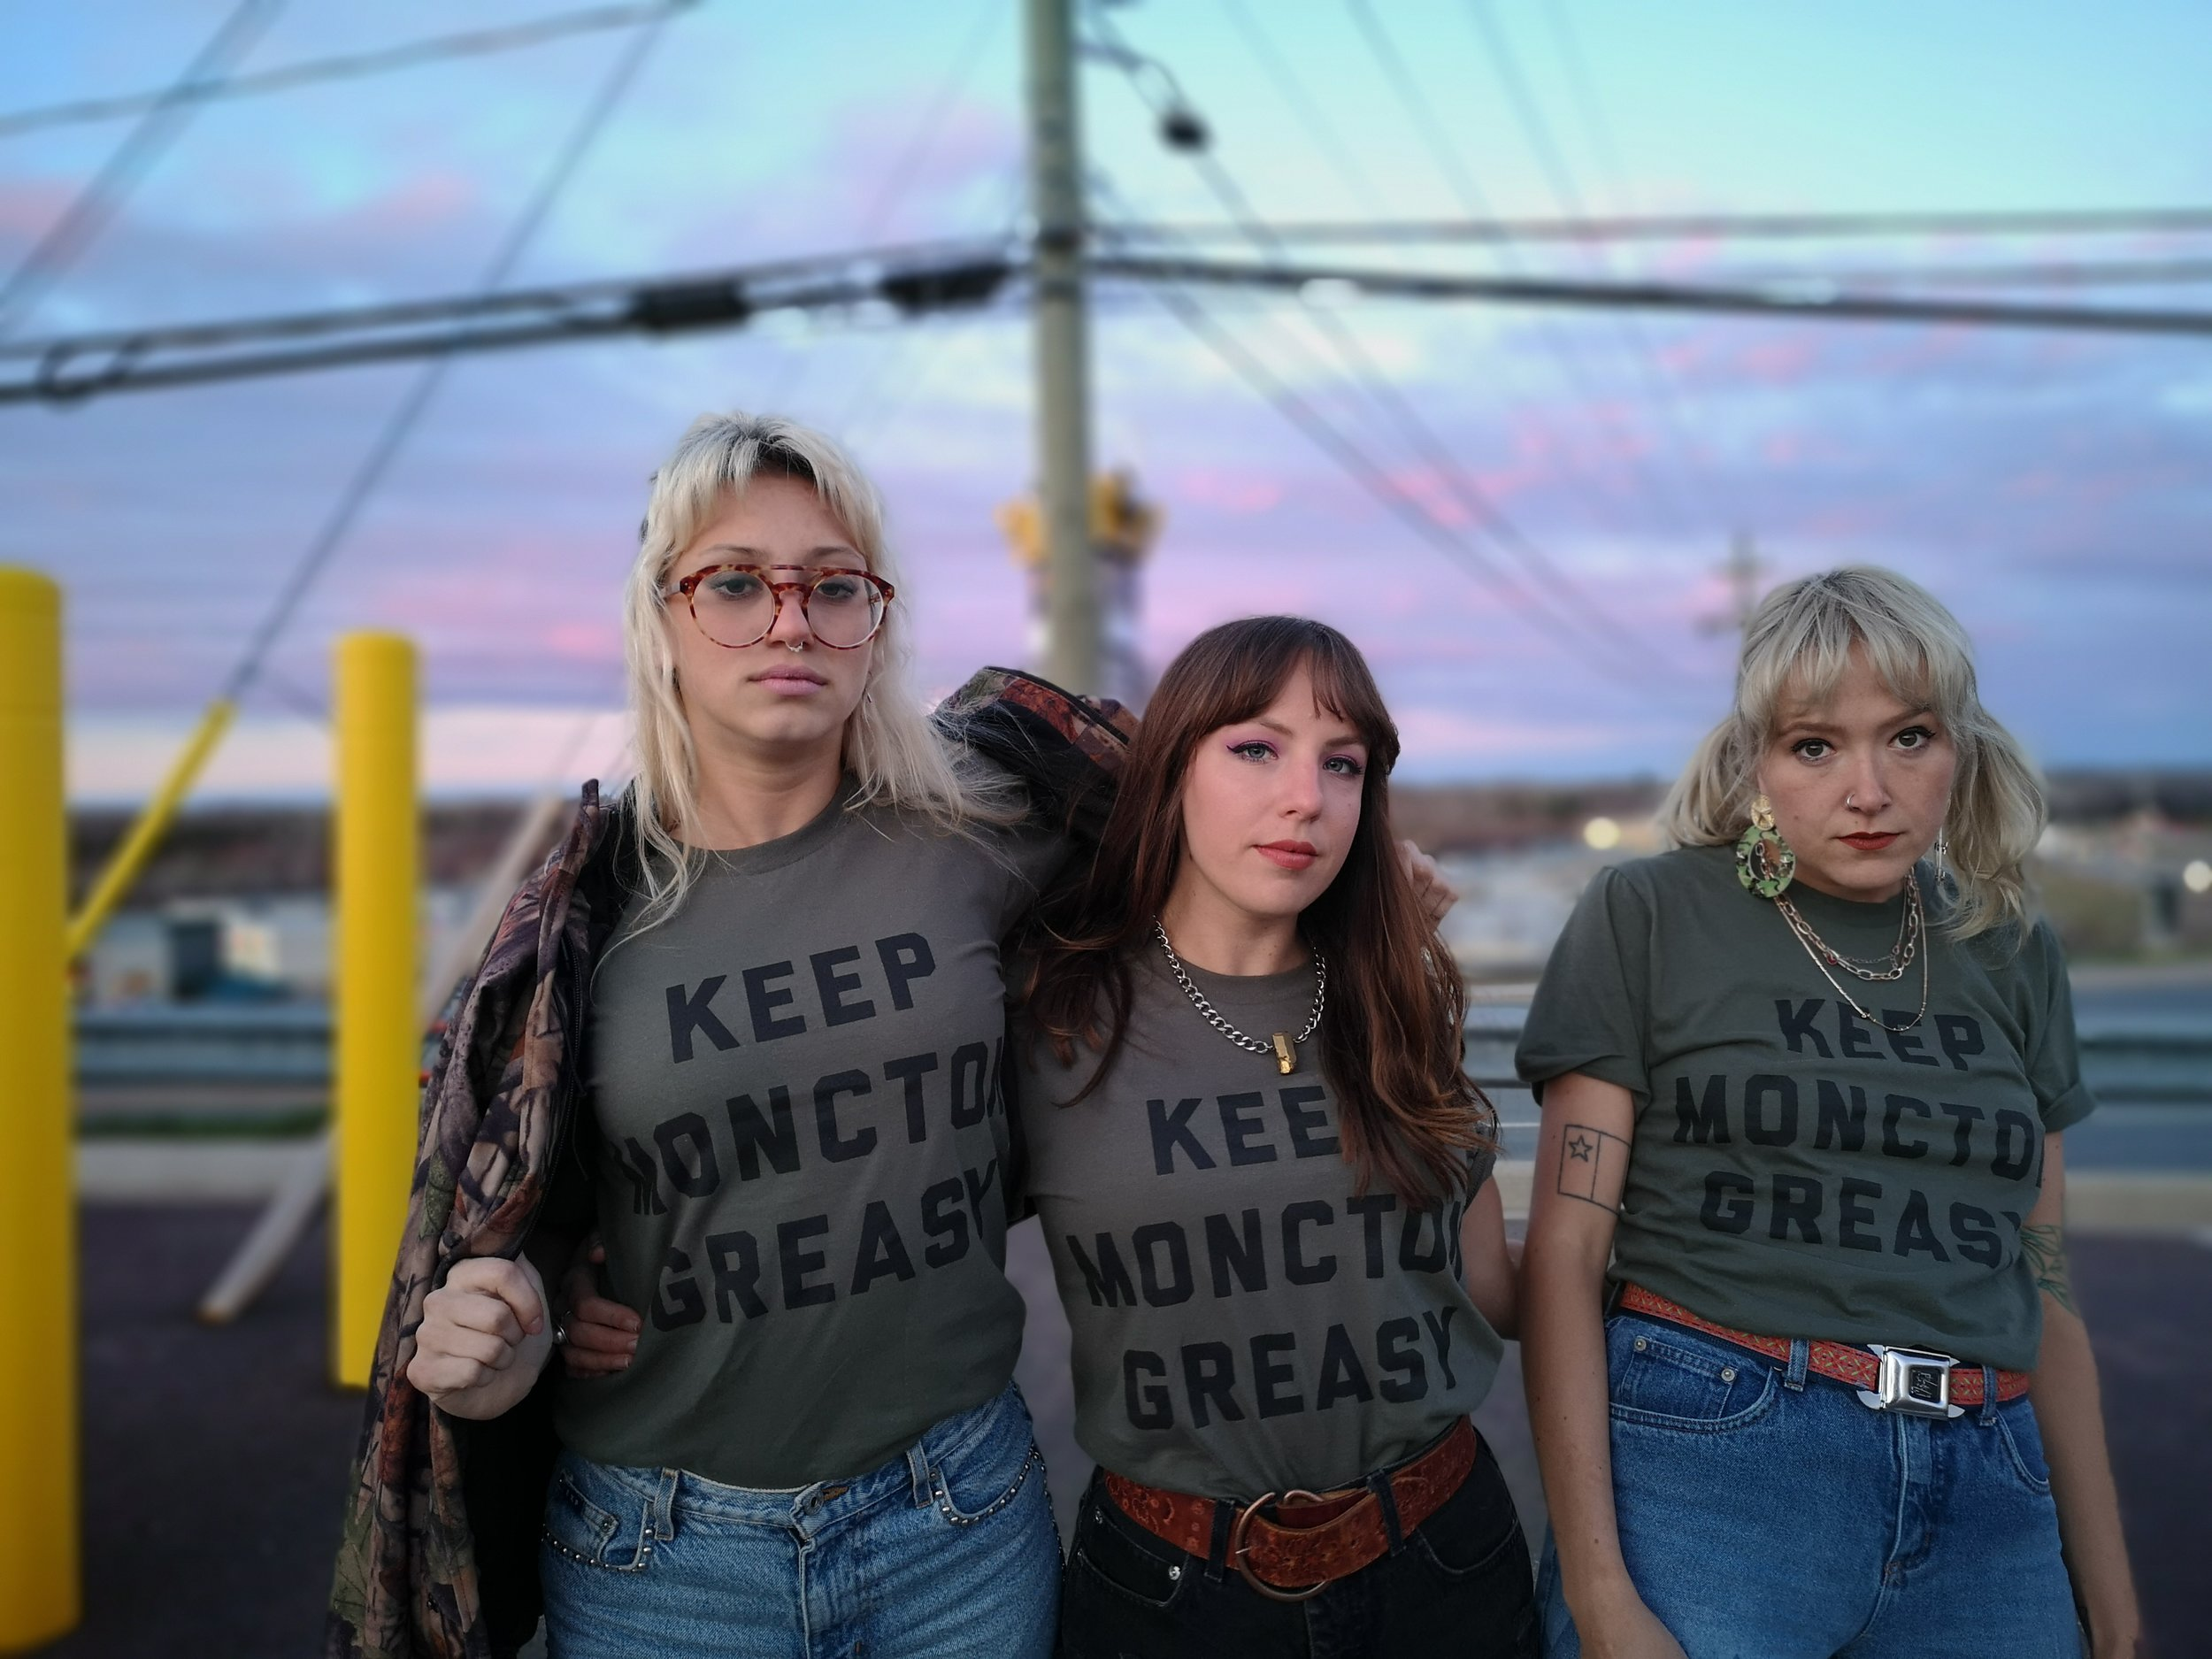 Keep Moncton Greasy T-Shirt - The Girl From Away - Moncton, New Brunswick 2.jpg